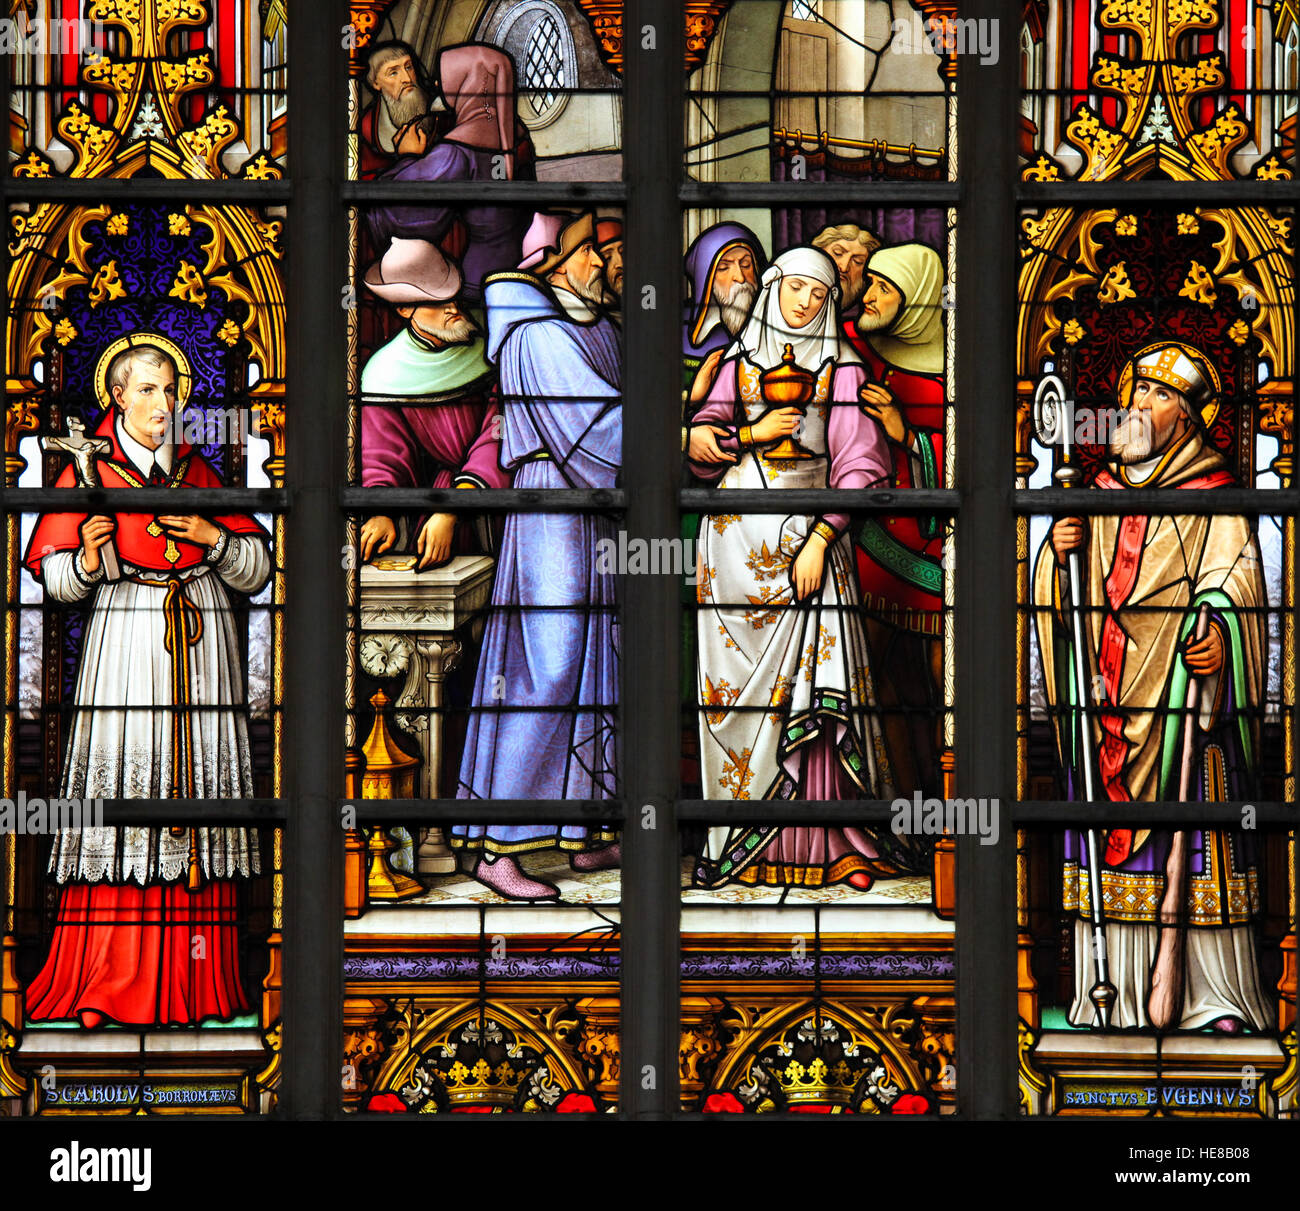 Stained Glass depicting the antisemitic legend of desecrated sacramental bread, whereby a female Jewish convert - Stock Image